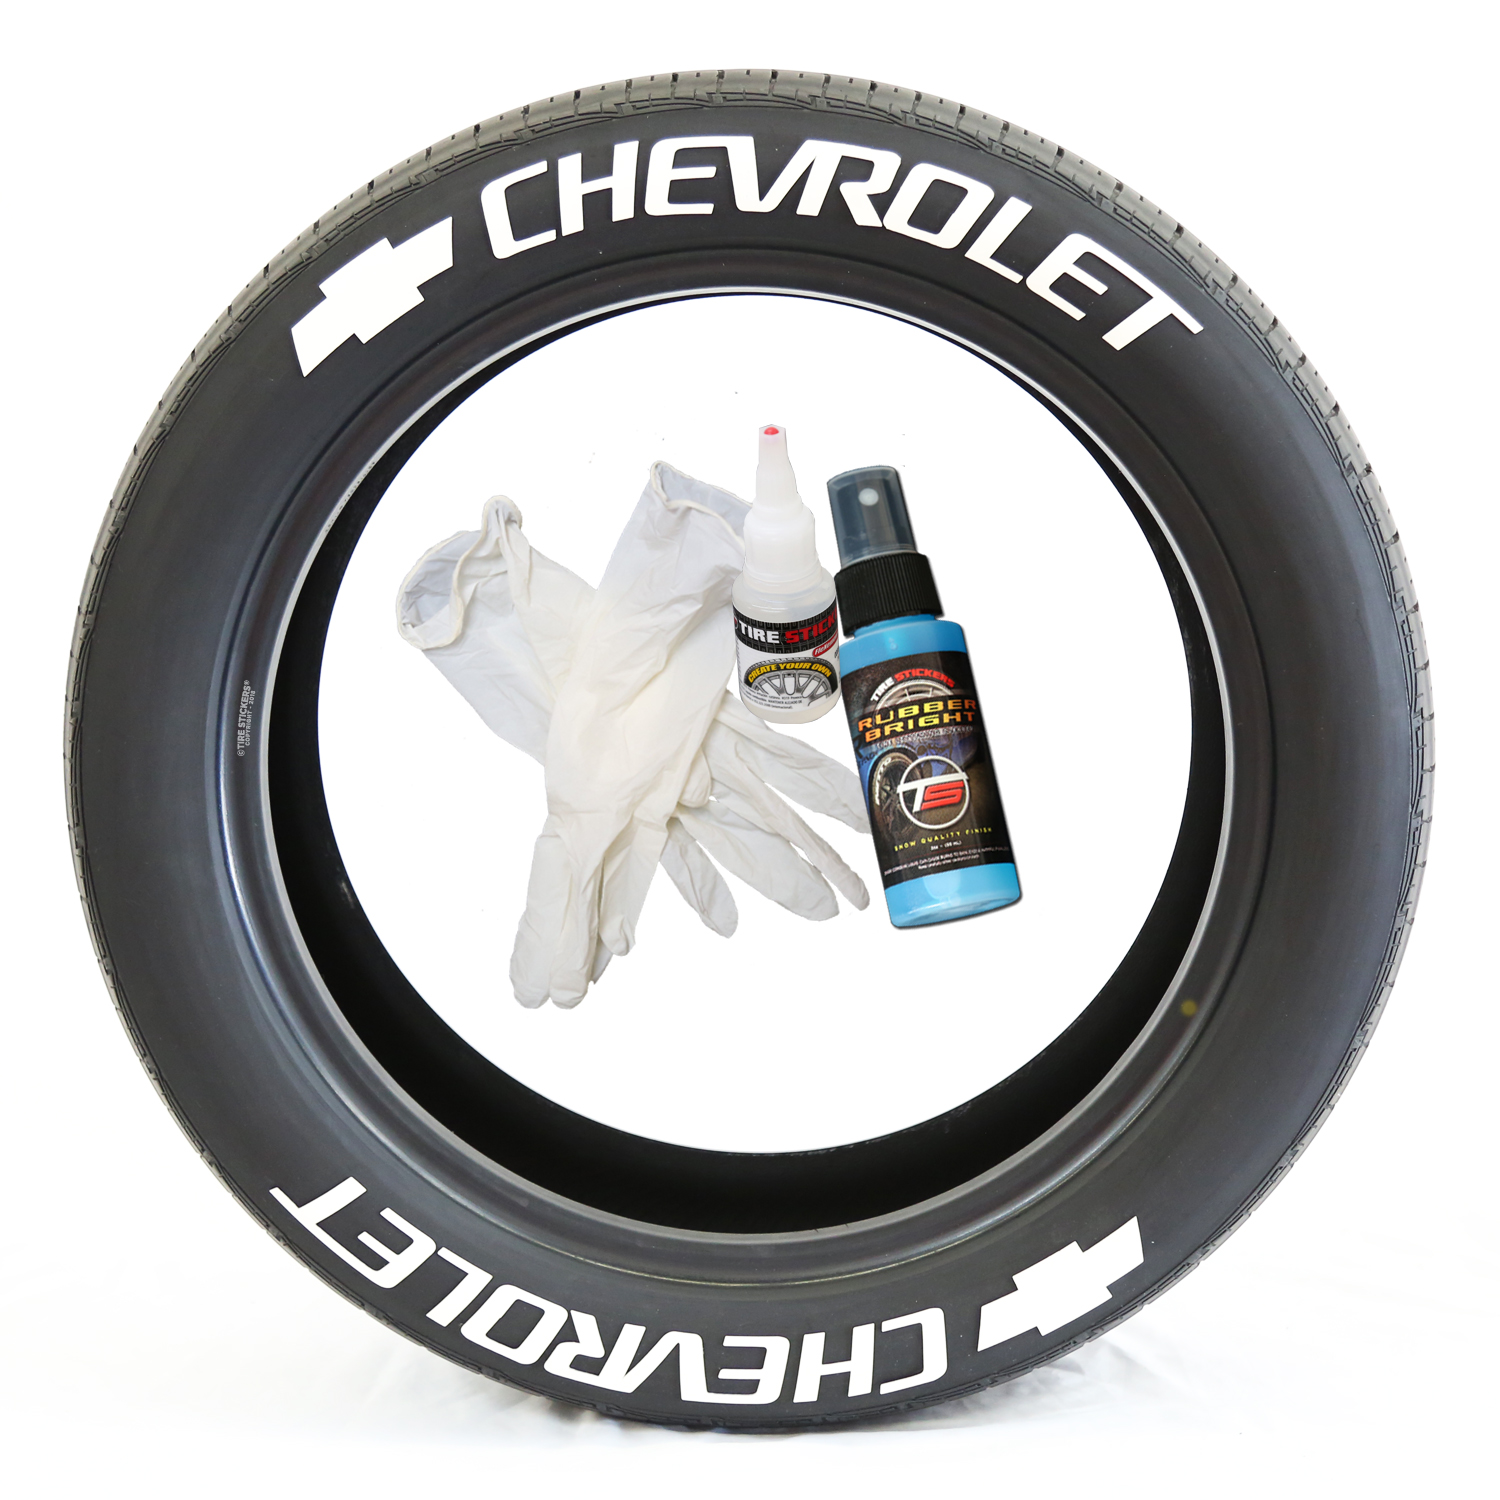 Chevrolet-with-bowtie-logo-Tire-Stickers-with-glue-and-gloves-front